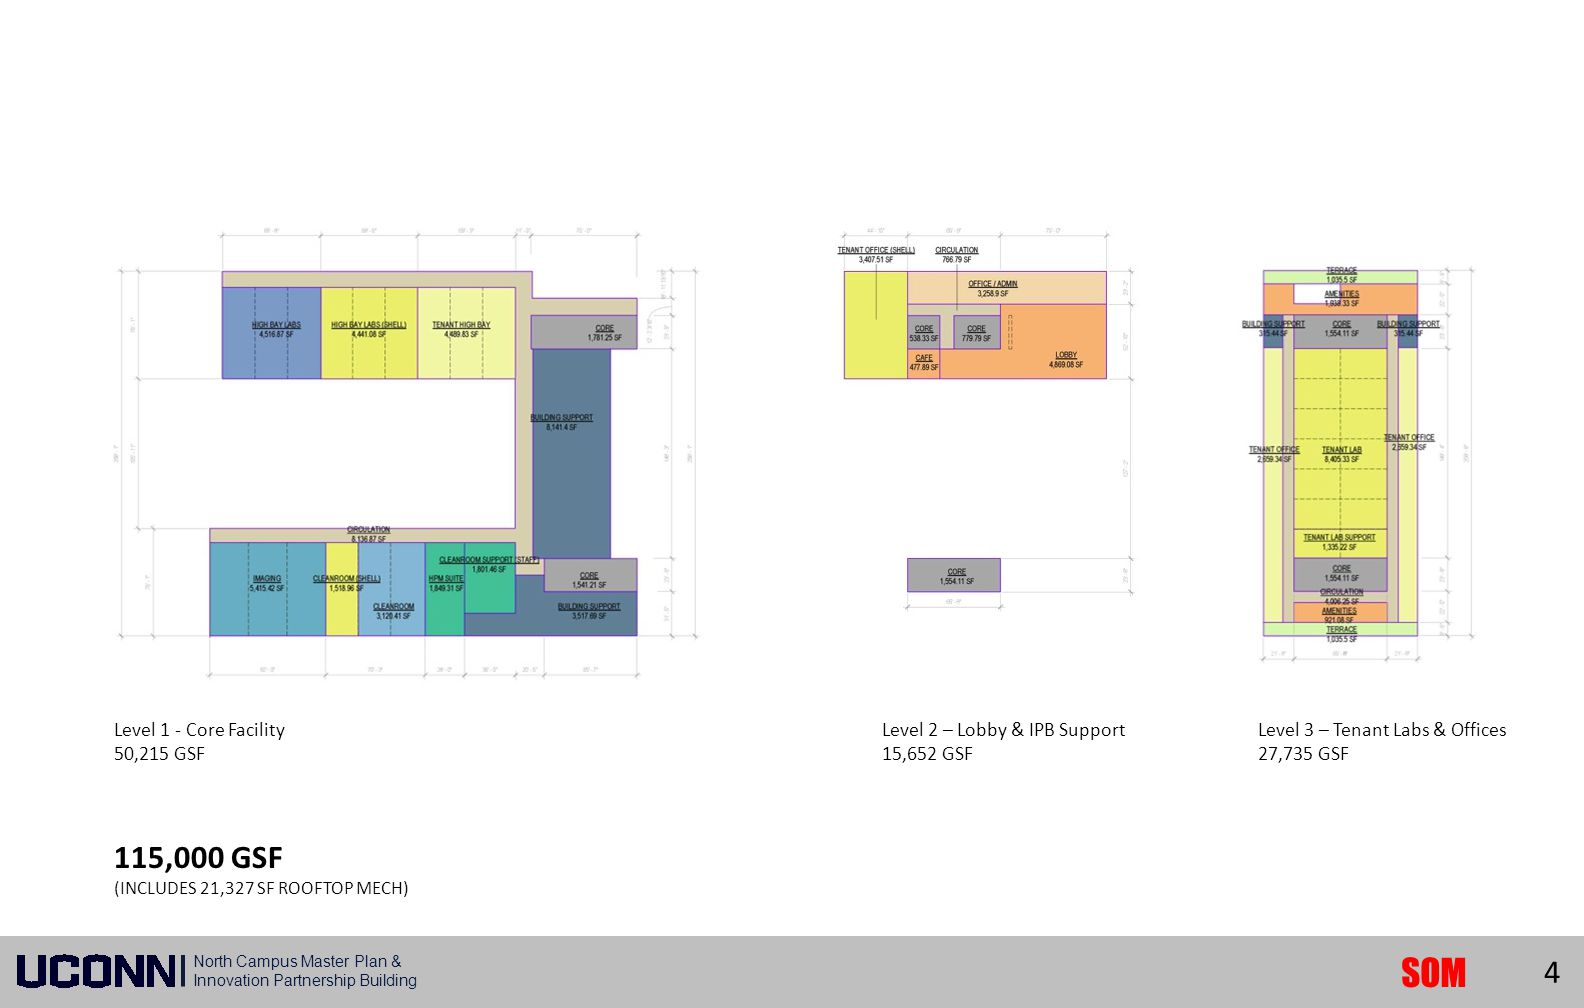 Phase I Building Site Plan Phase I Building Site Plan 115,000 GSF